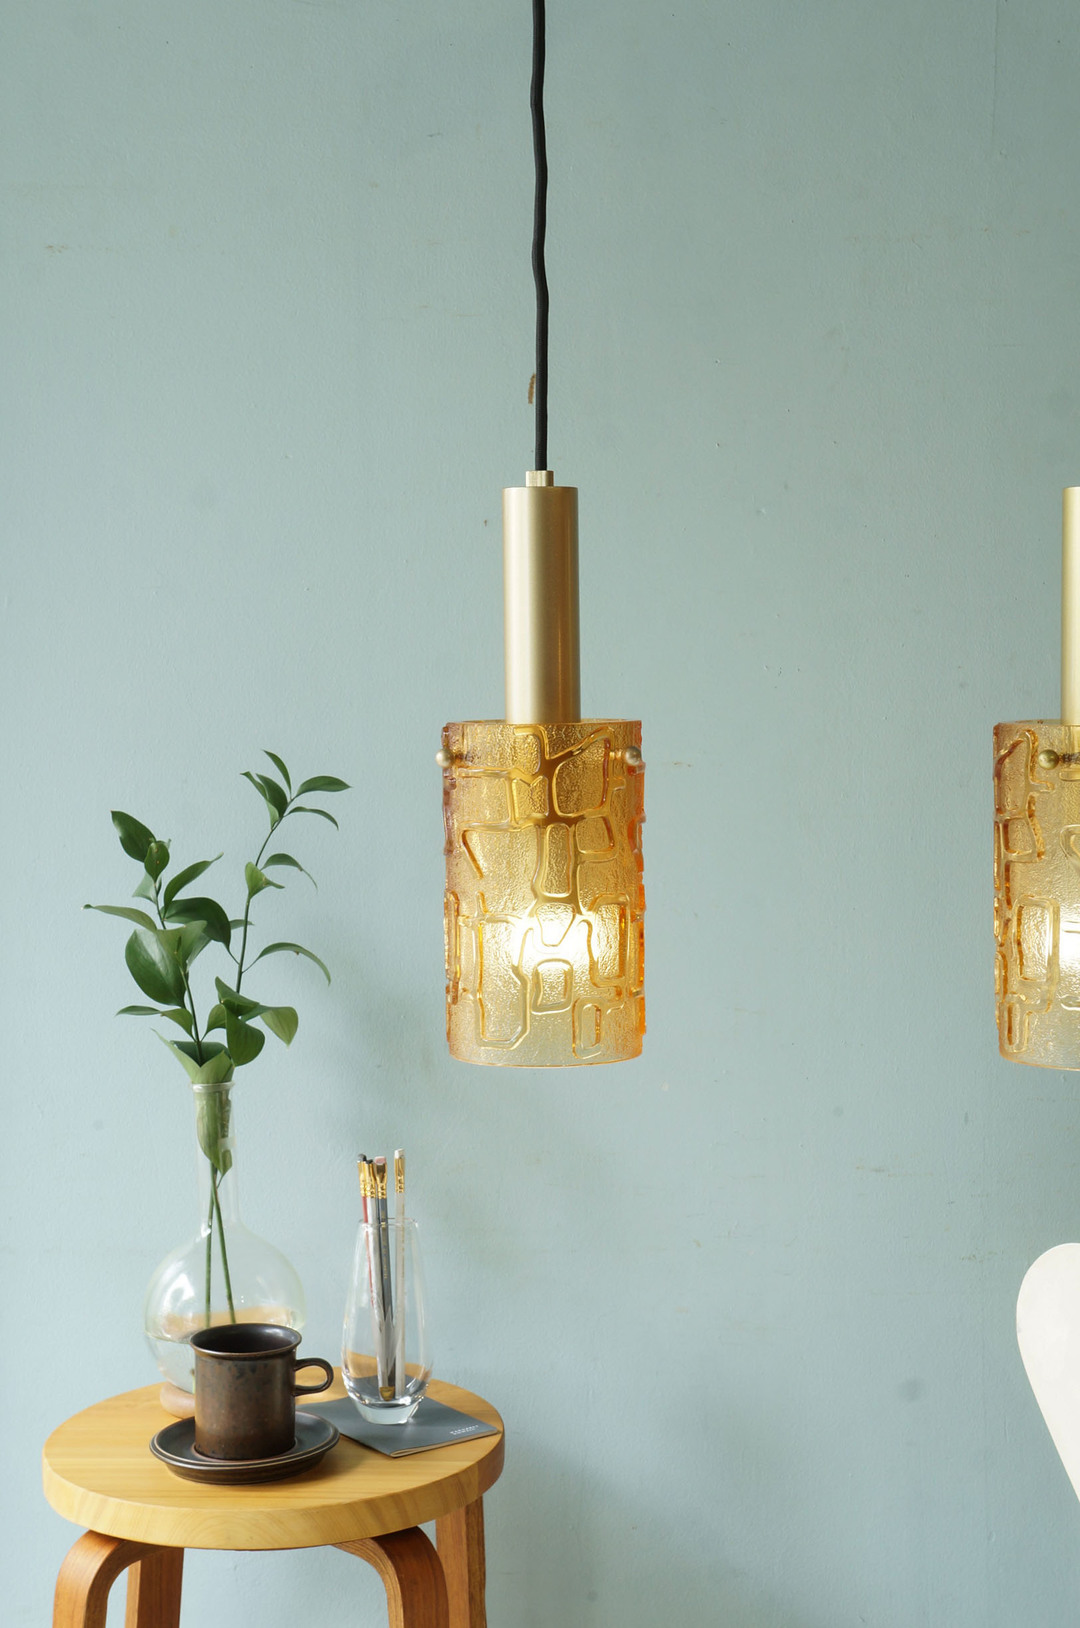 Scandinavian Vintage Style Amber Glass Pendant Light/アンバーガラス ペンダントライト 北欧モダン 照明 レトロ ヴィンテージスタイル 1